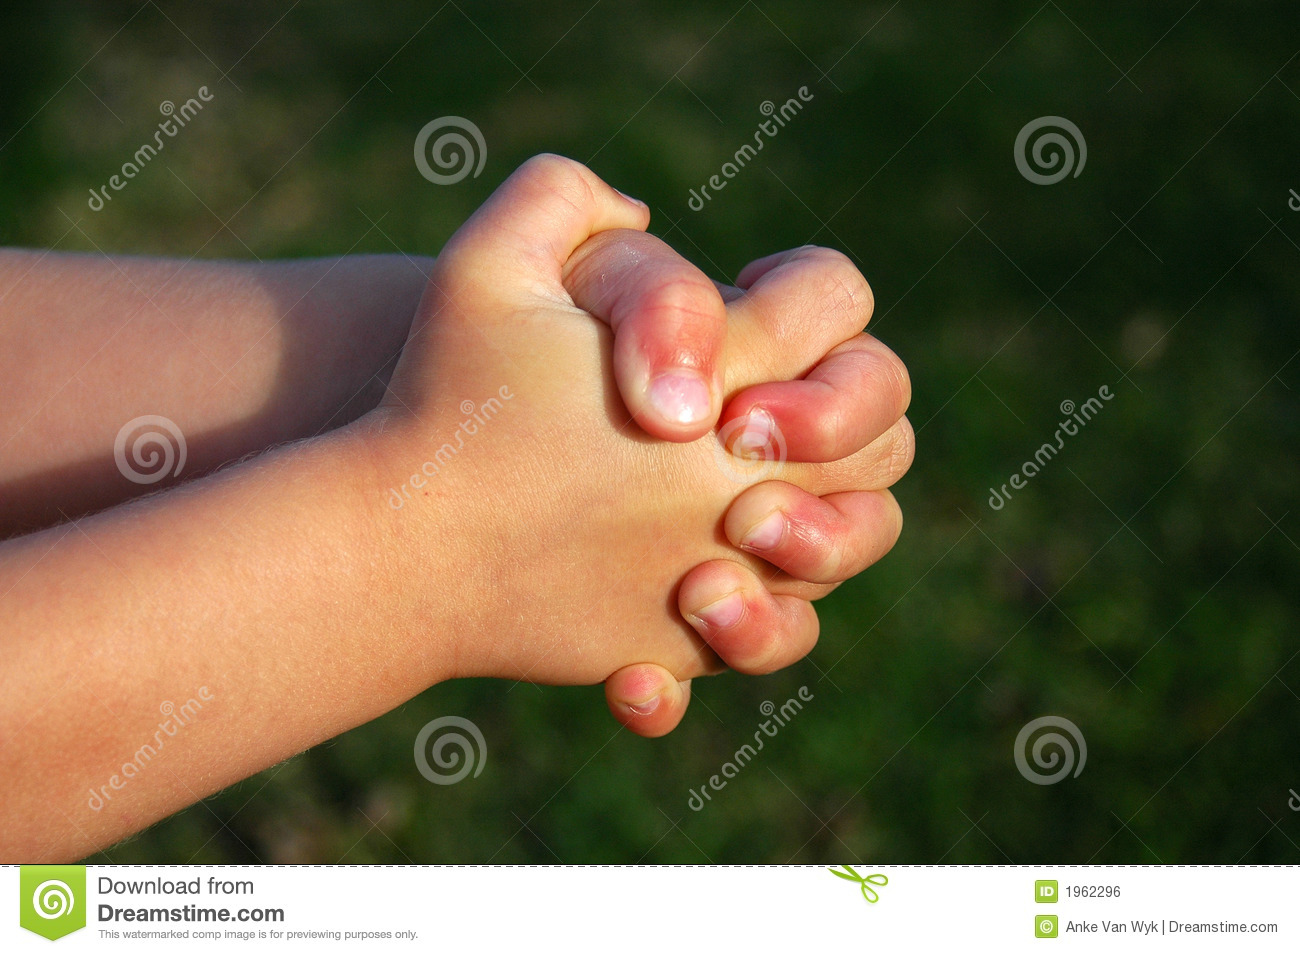 Cute Baby Girl Child Wallpaper Child Hands Praying Royalty Free Stock Image Image 1962296